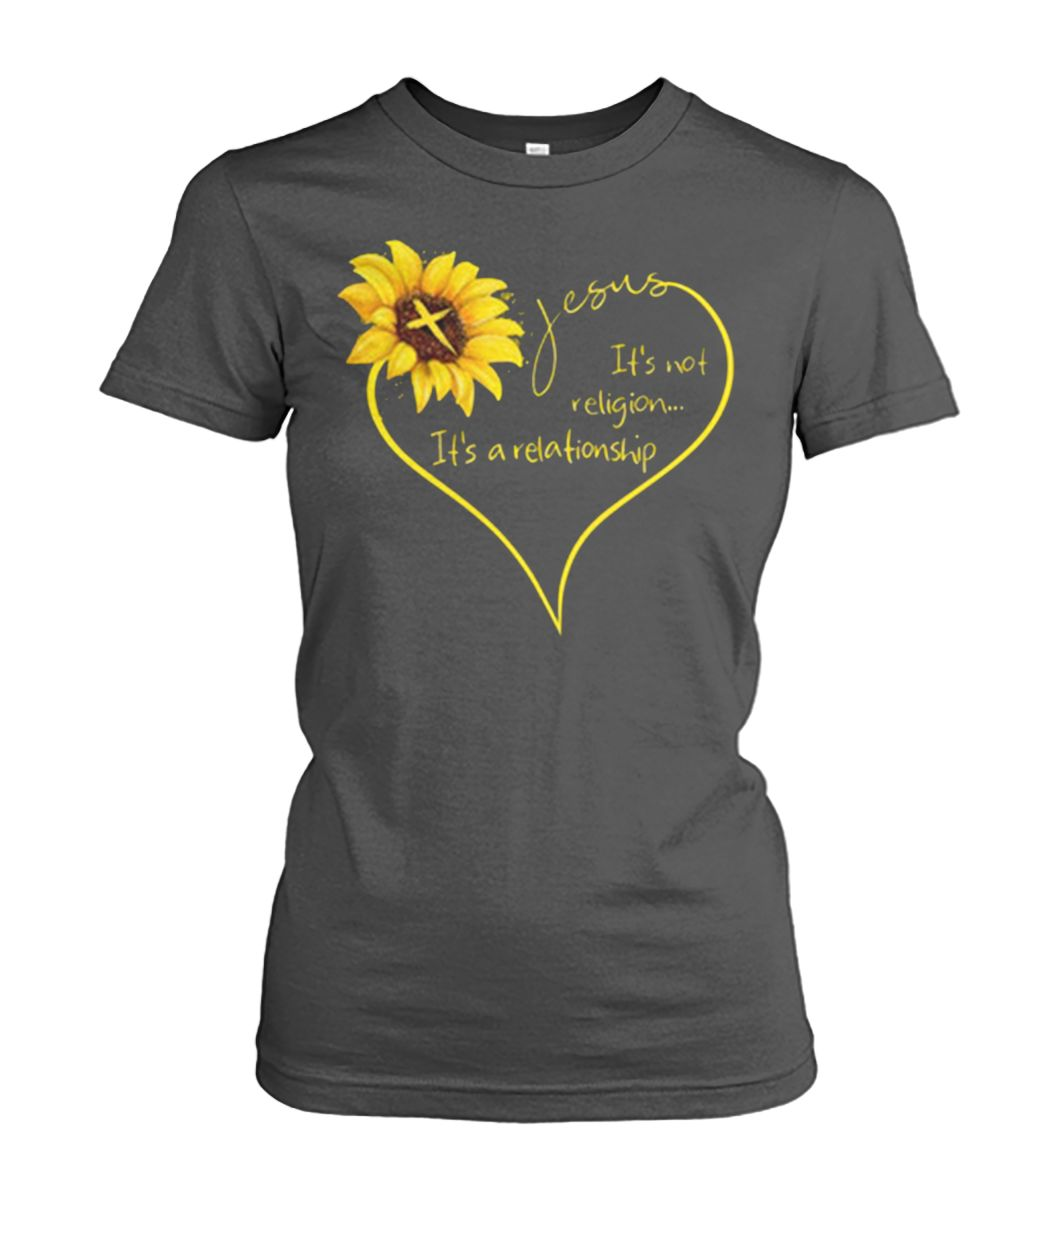 Sunflower Jesus it's not religion it's a relationship women's crew tee